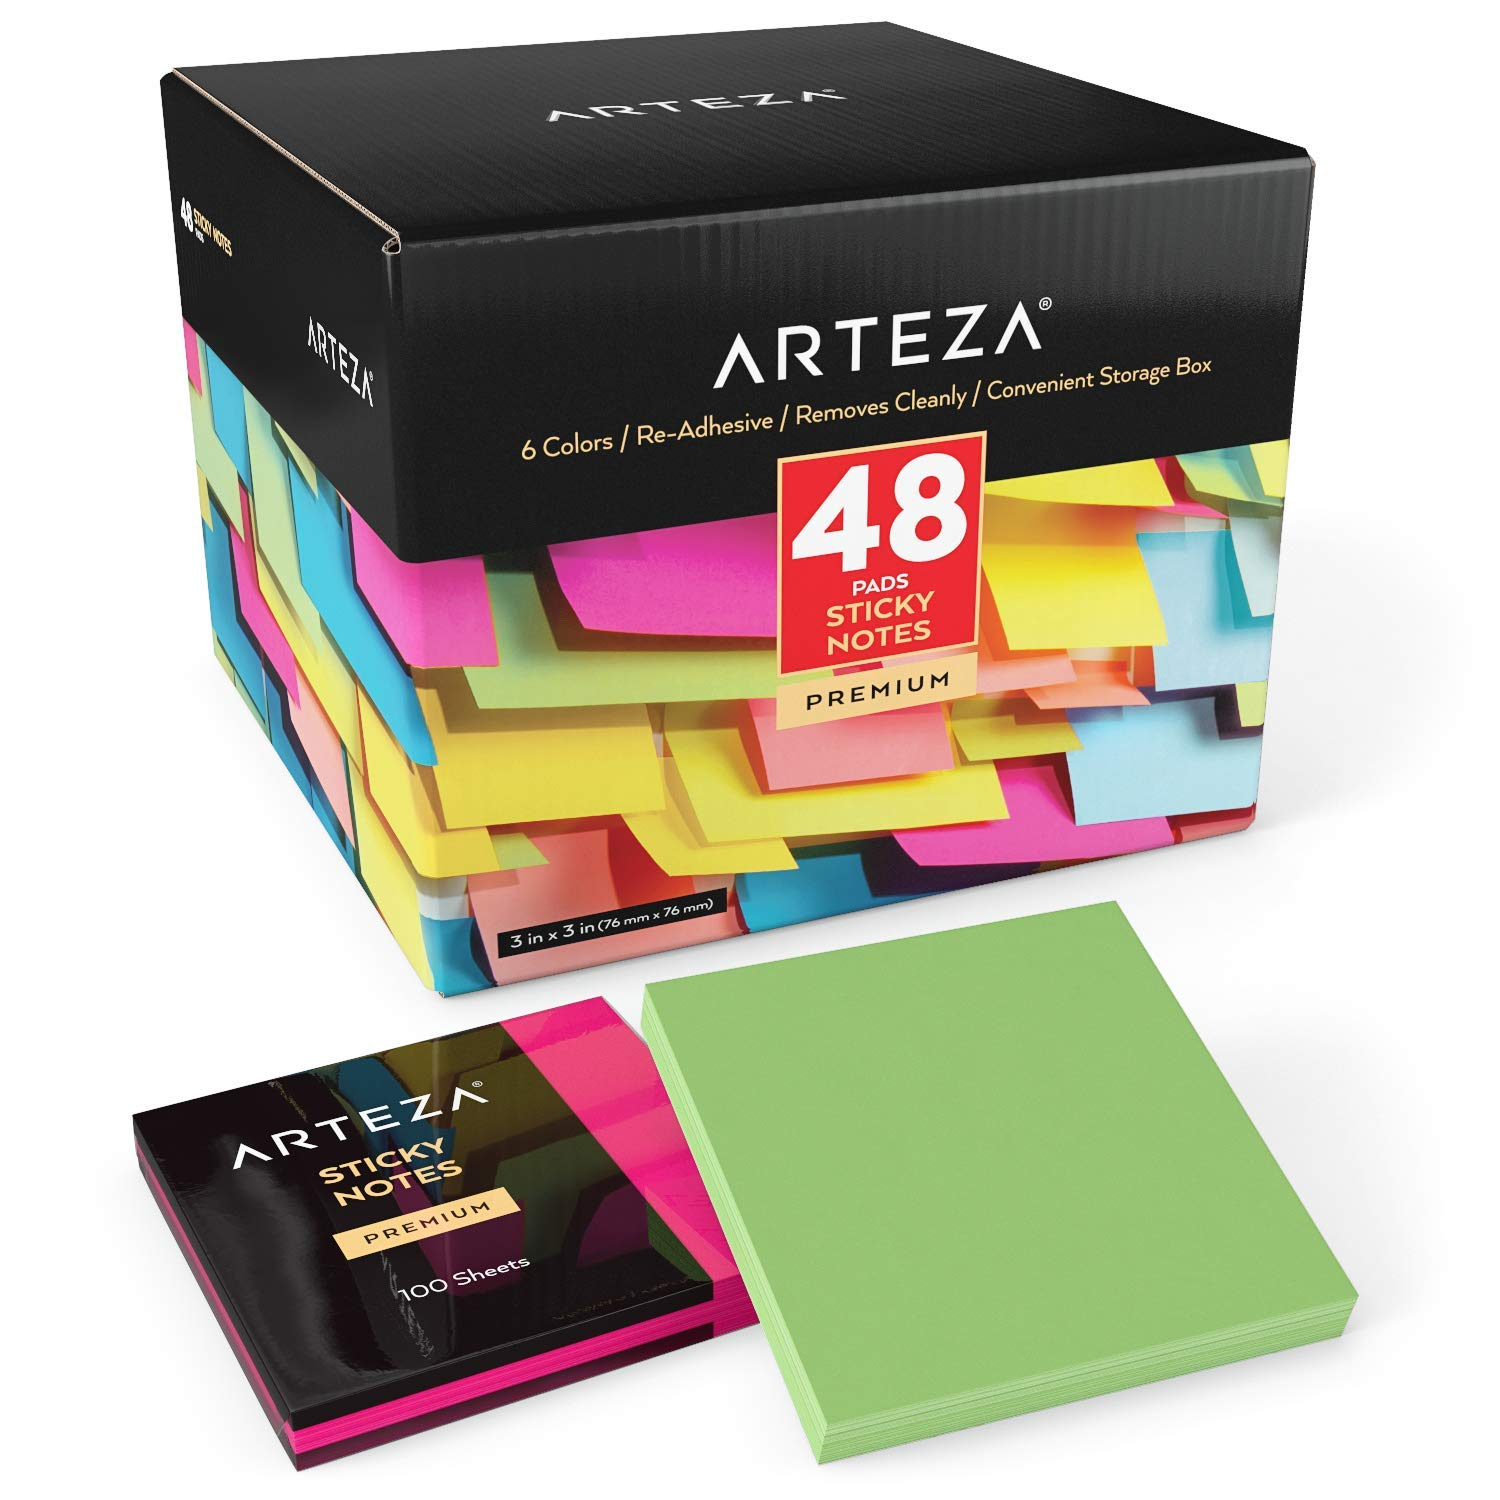 ARTEZA 3x3 Inches Sticky Notes, 48 Pads, 100 Sheets Per Pad, Bulk Pack, Assorted Colors, Re-Adhesive, Clean Removal, for Reminders, Studying, Office, School, and Home by ARTEZA